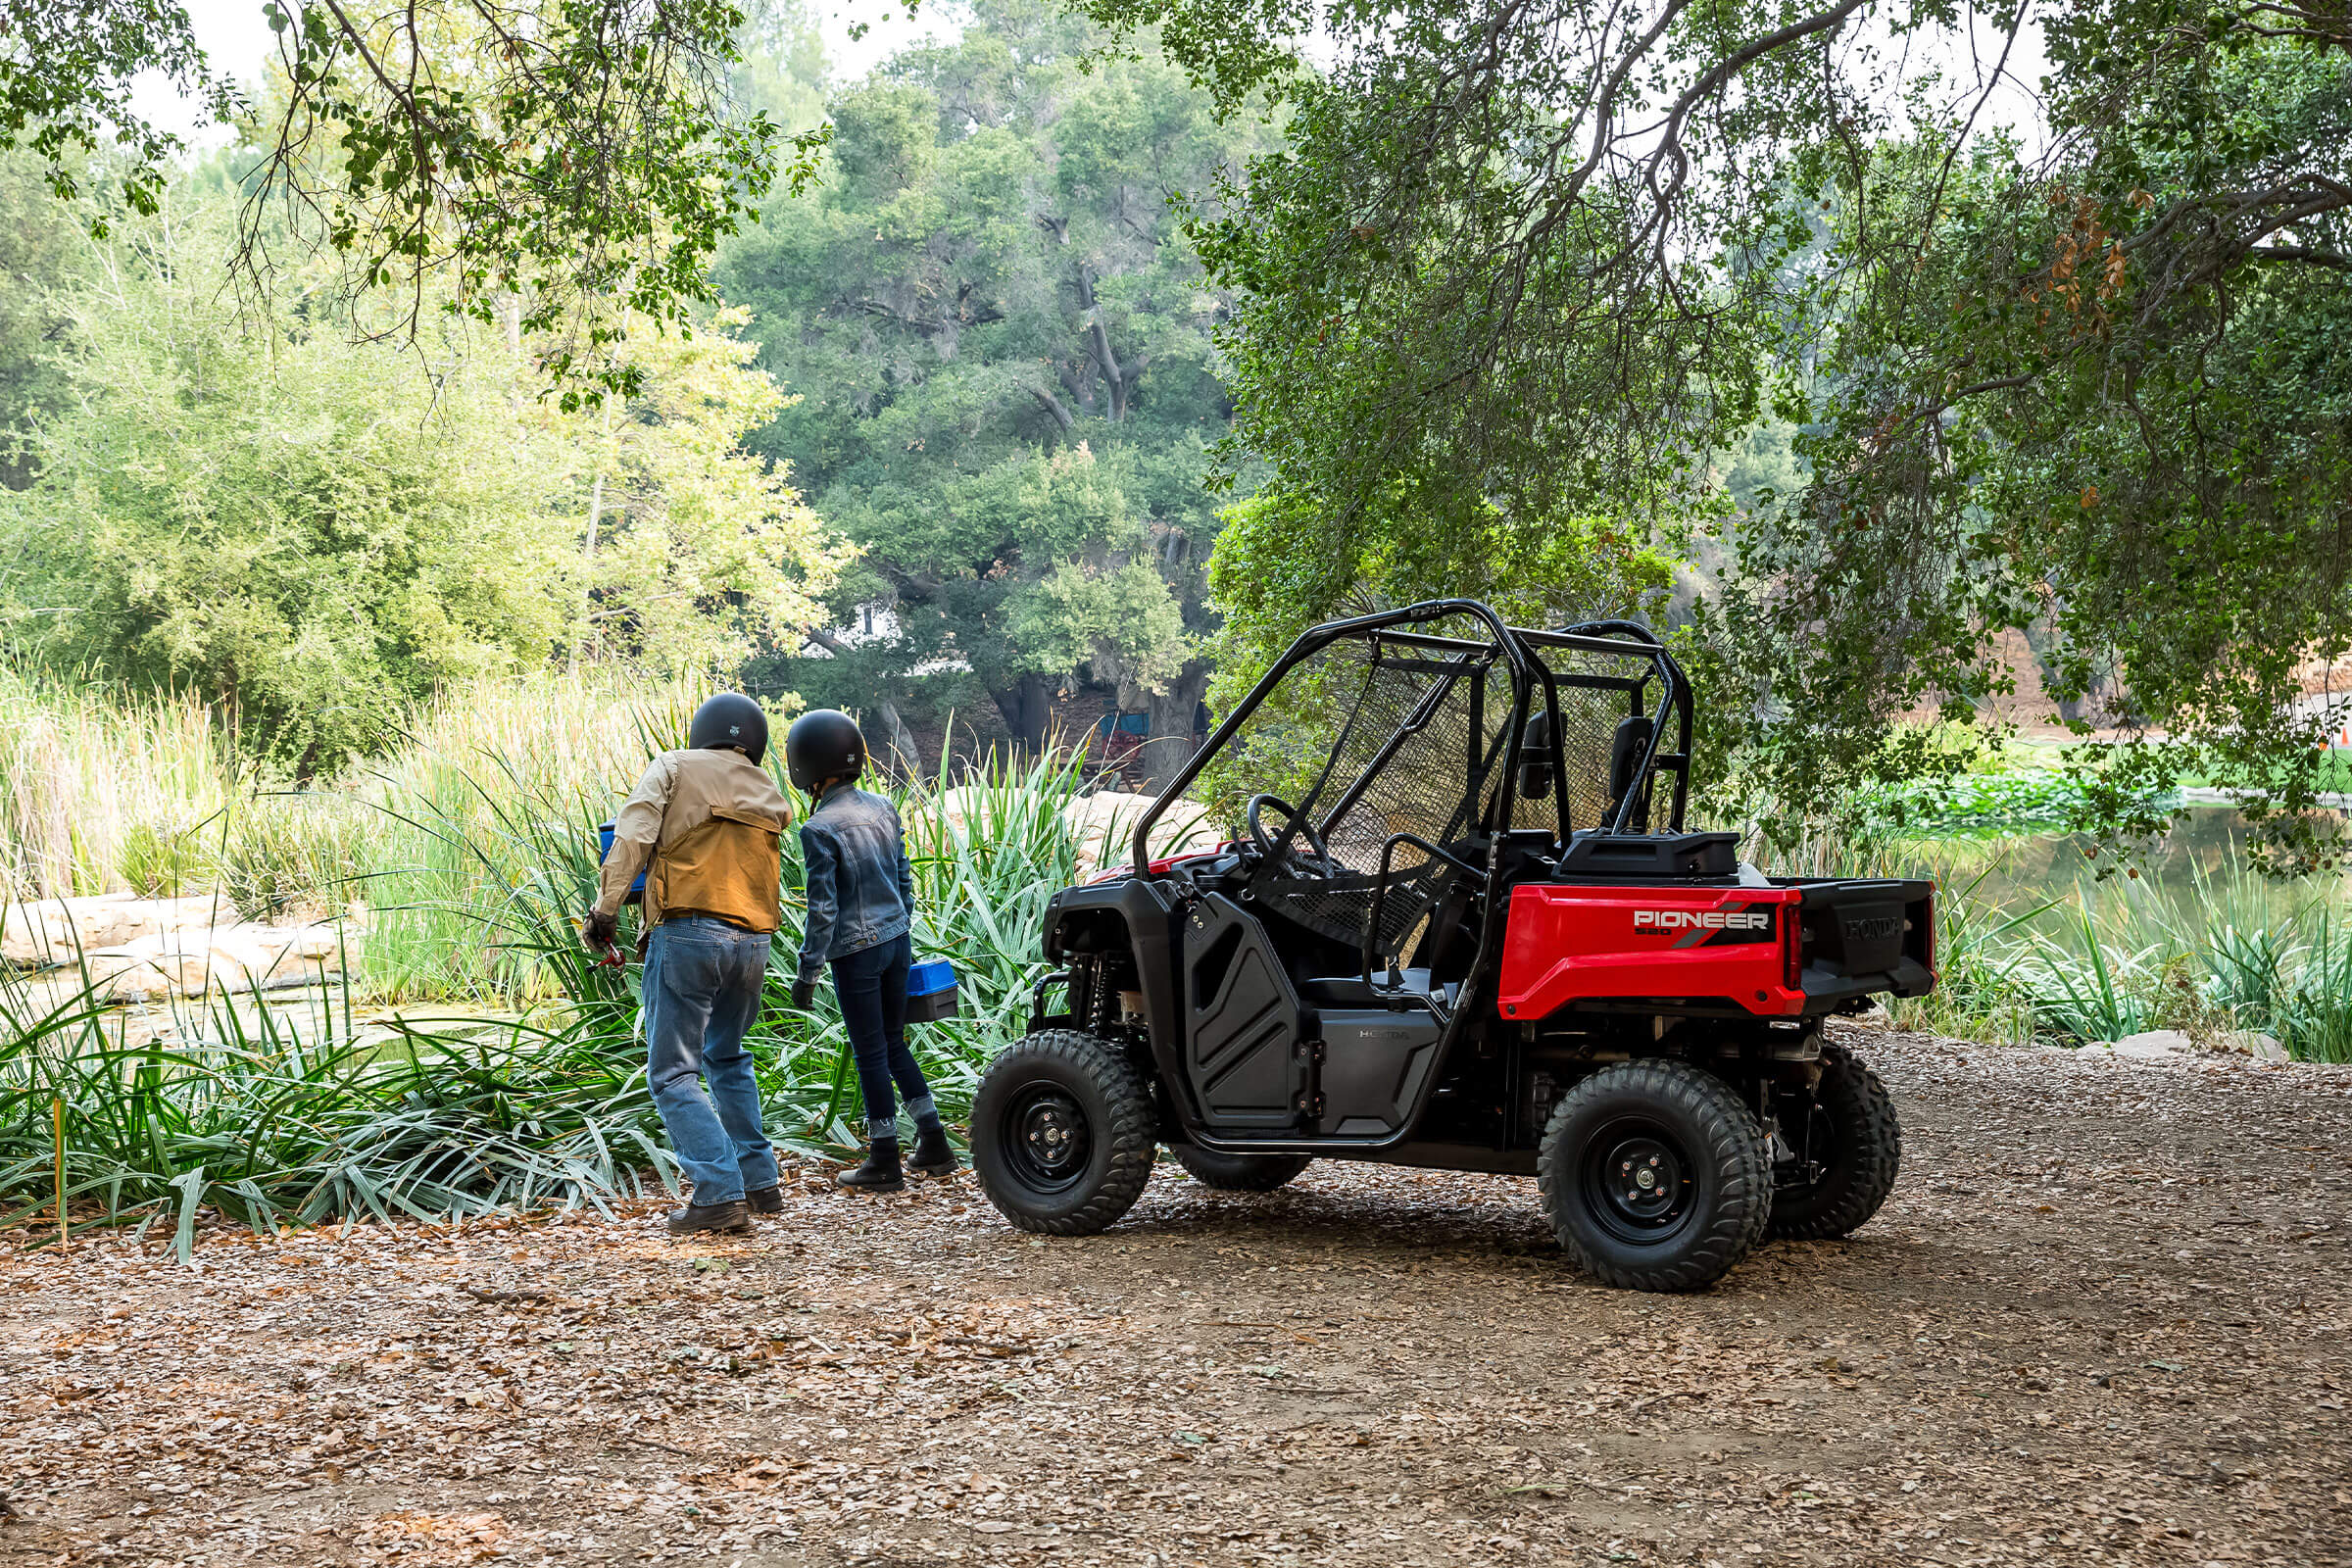 2021 Honda Pioneer 520 in Missoula, Montana - Photo 2